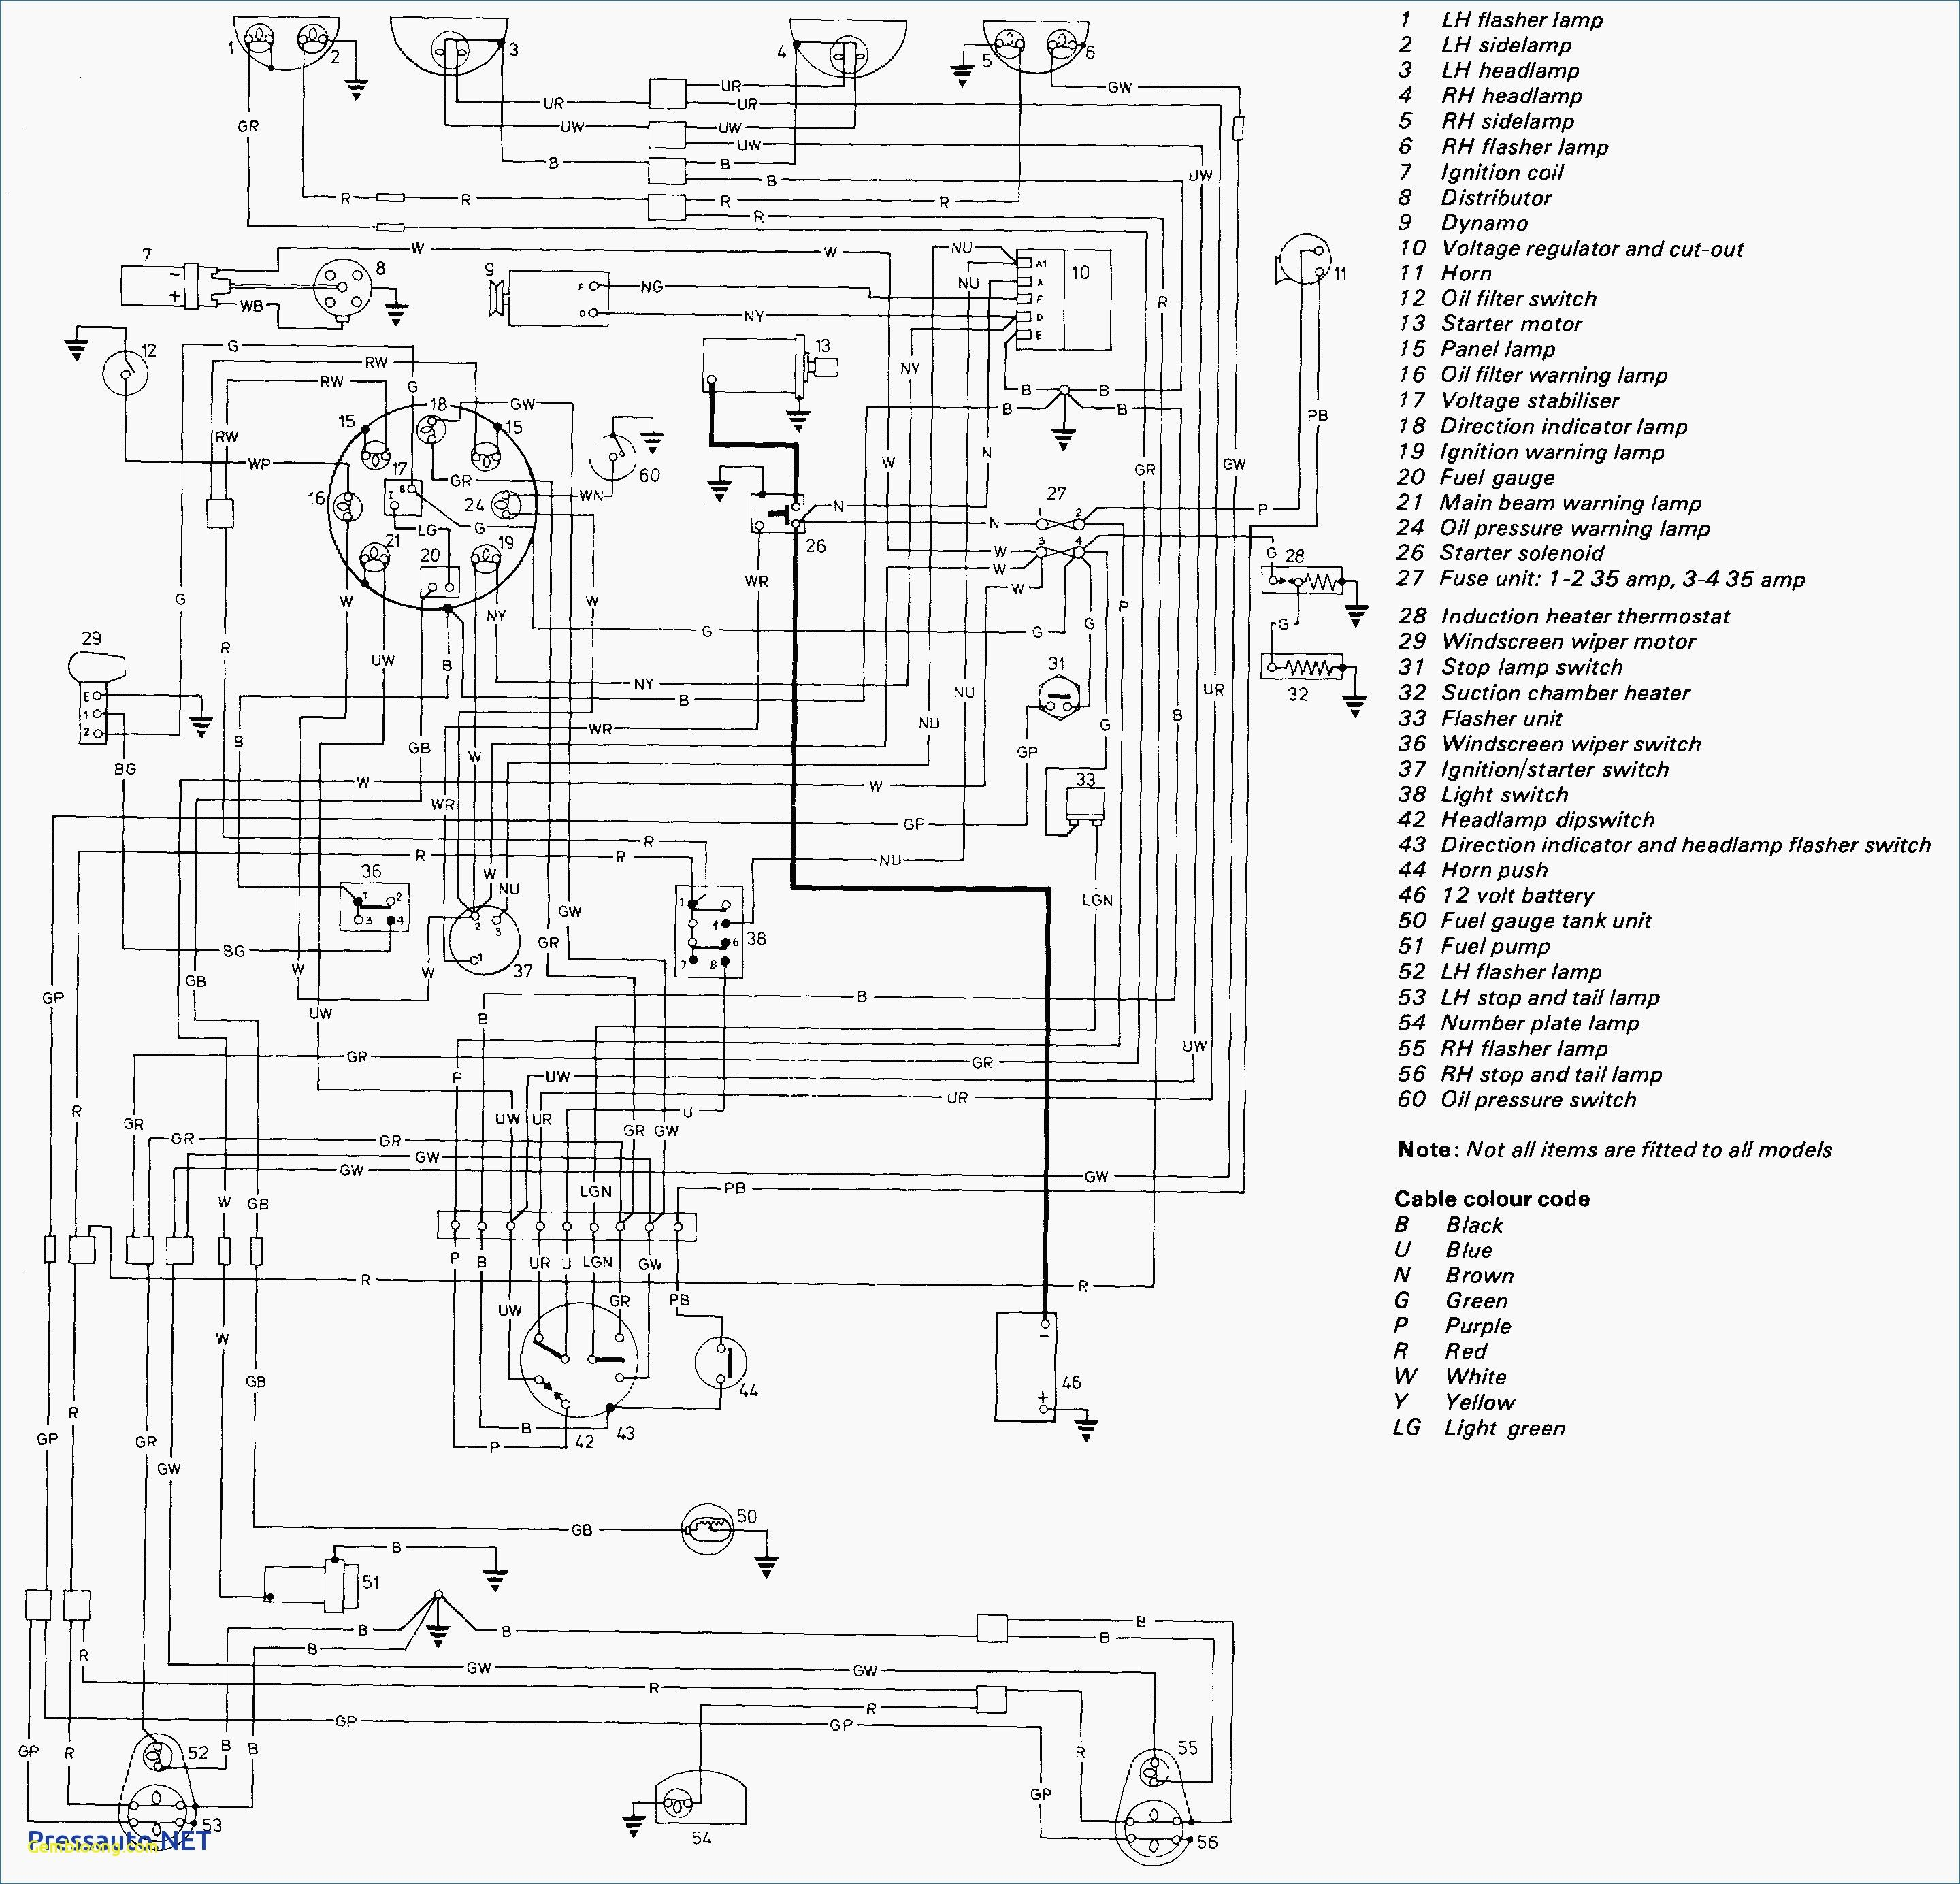 Chevy Cobalt Engine Wiring Diagram